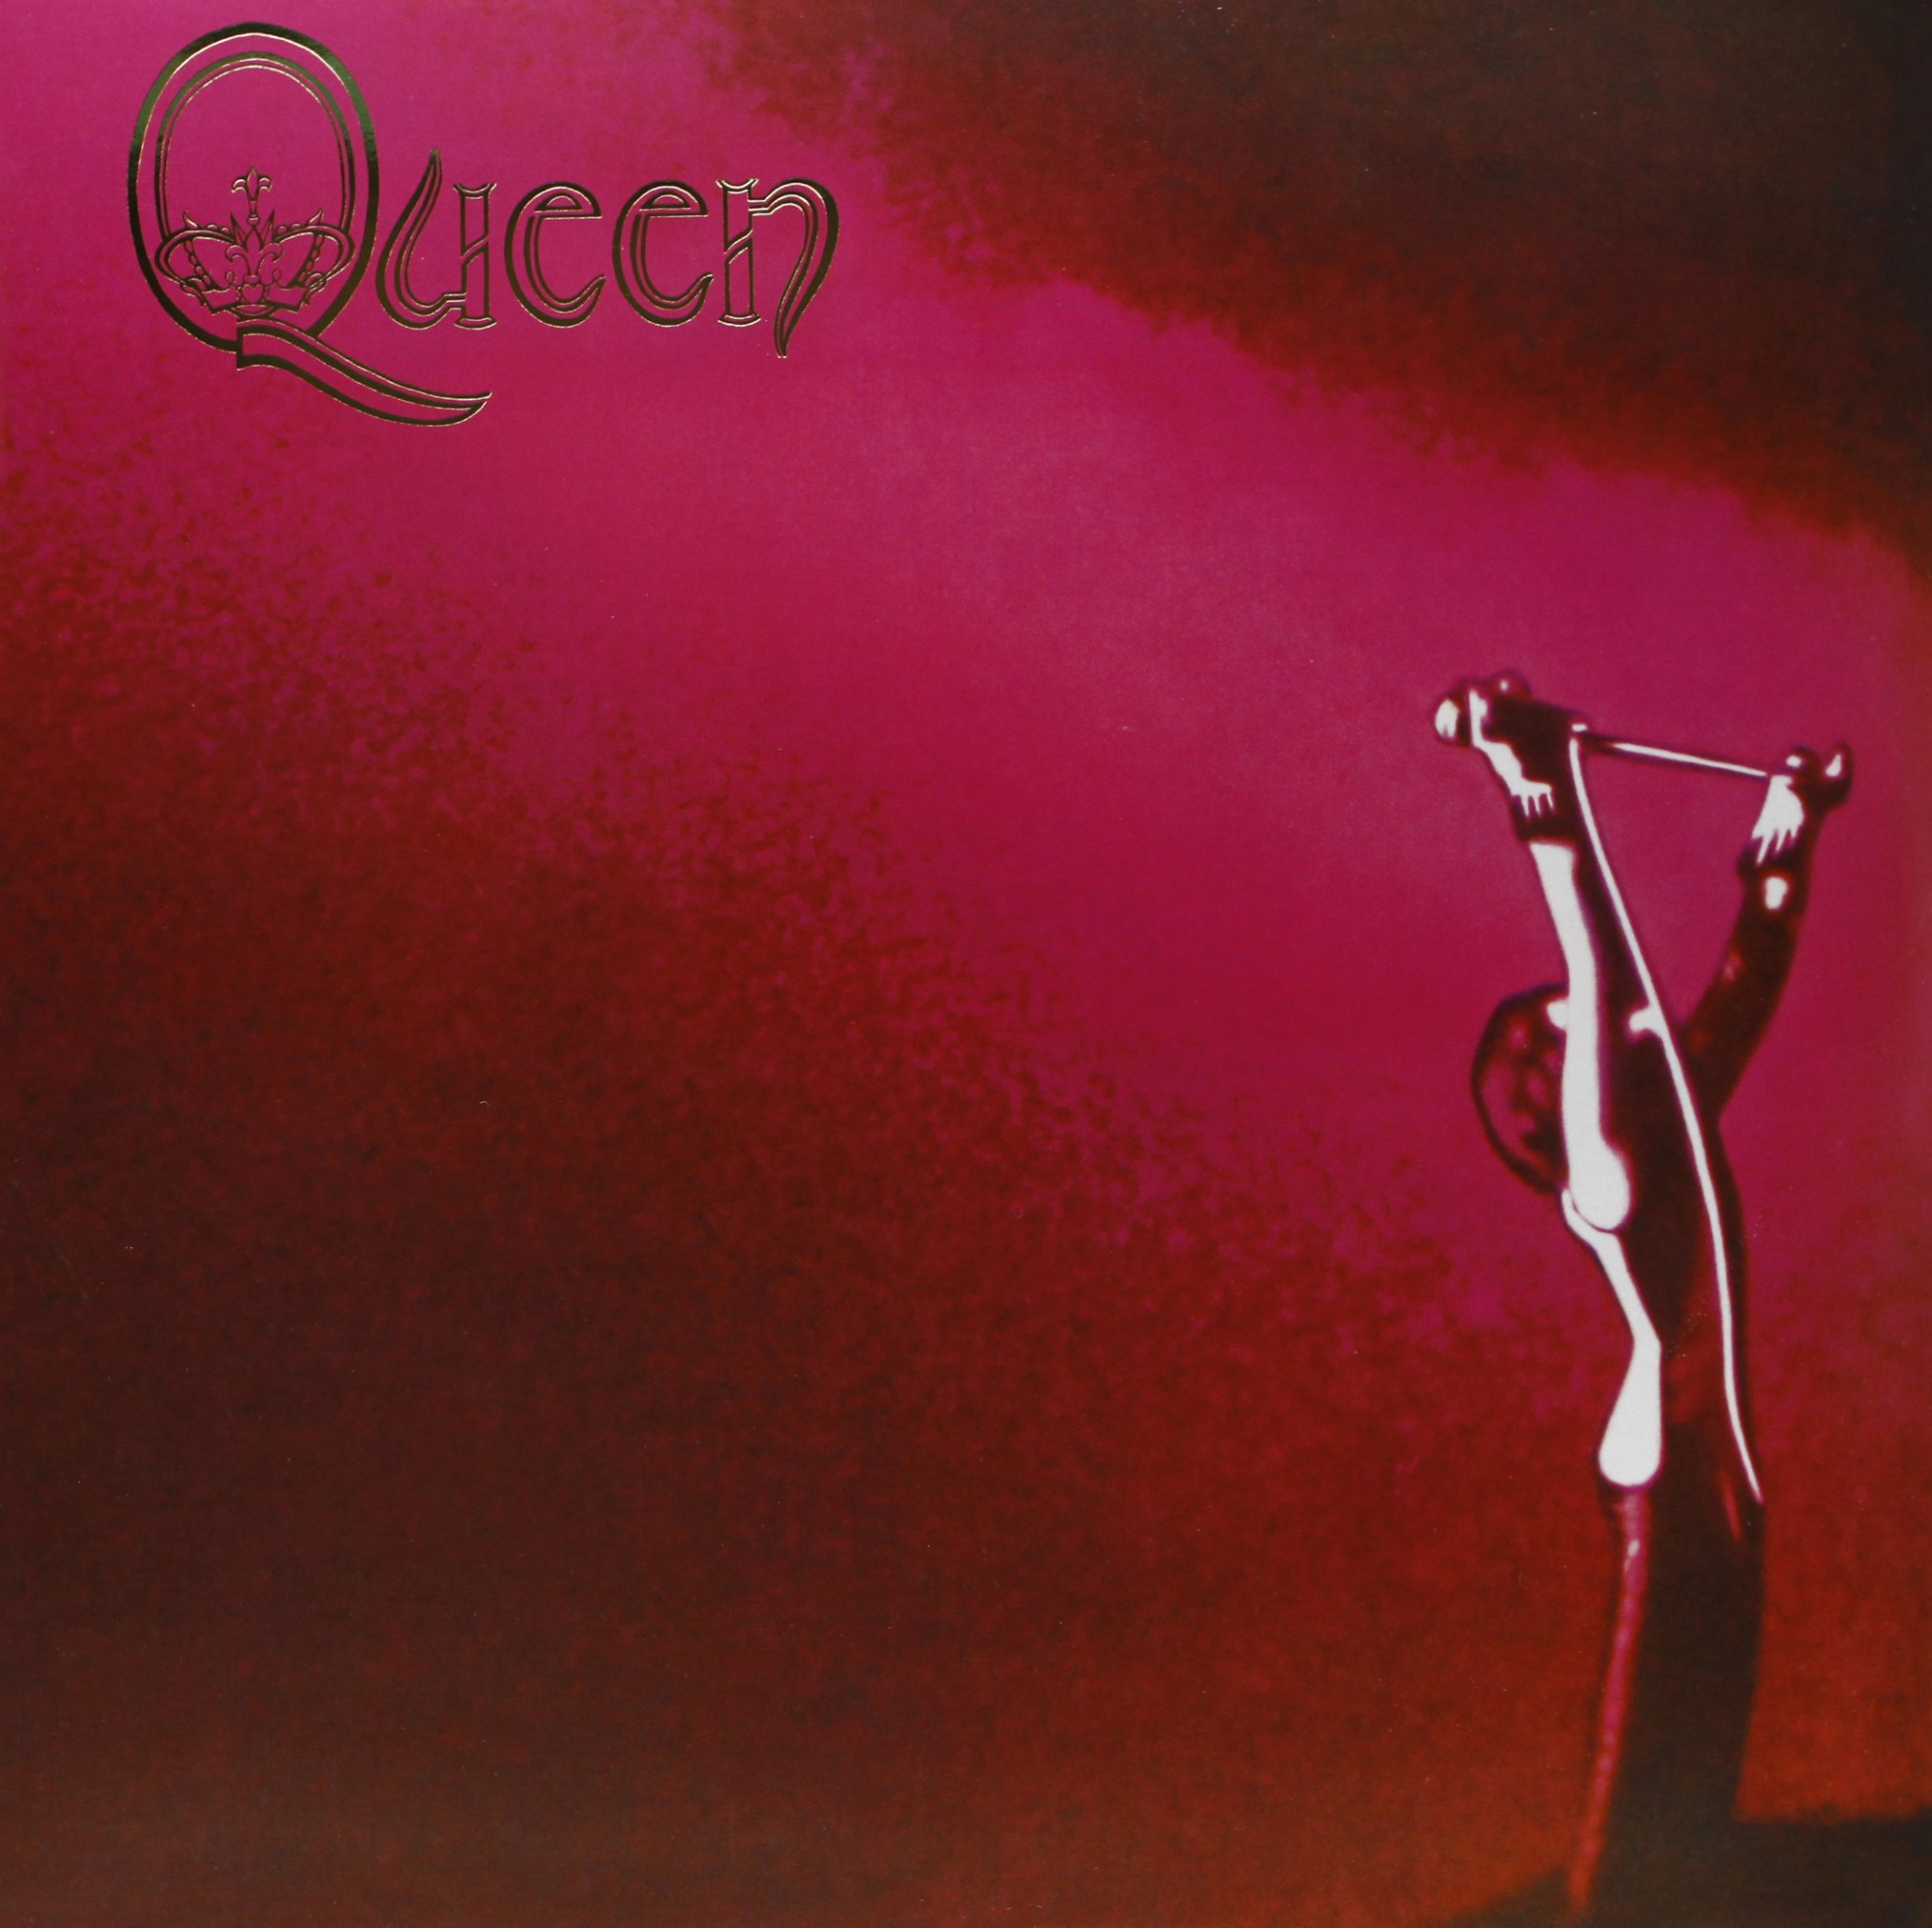 Vinilo : Queen - Queen (180 Gram Vinyl, Collector's Edition, Reissue)